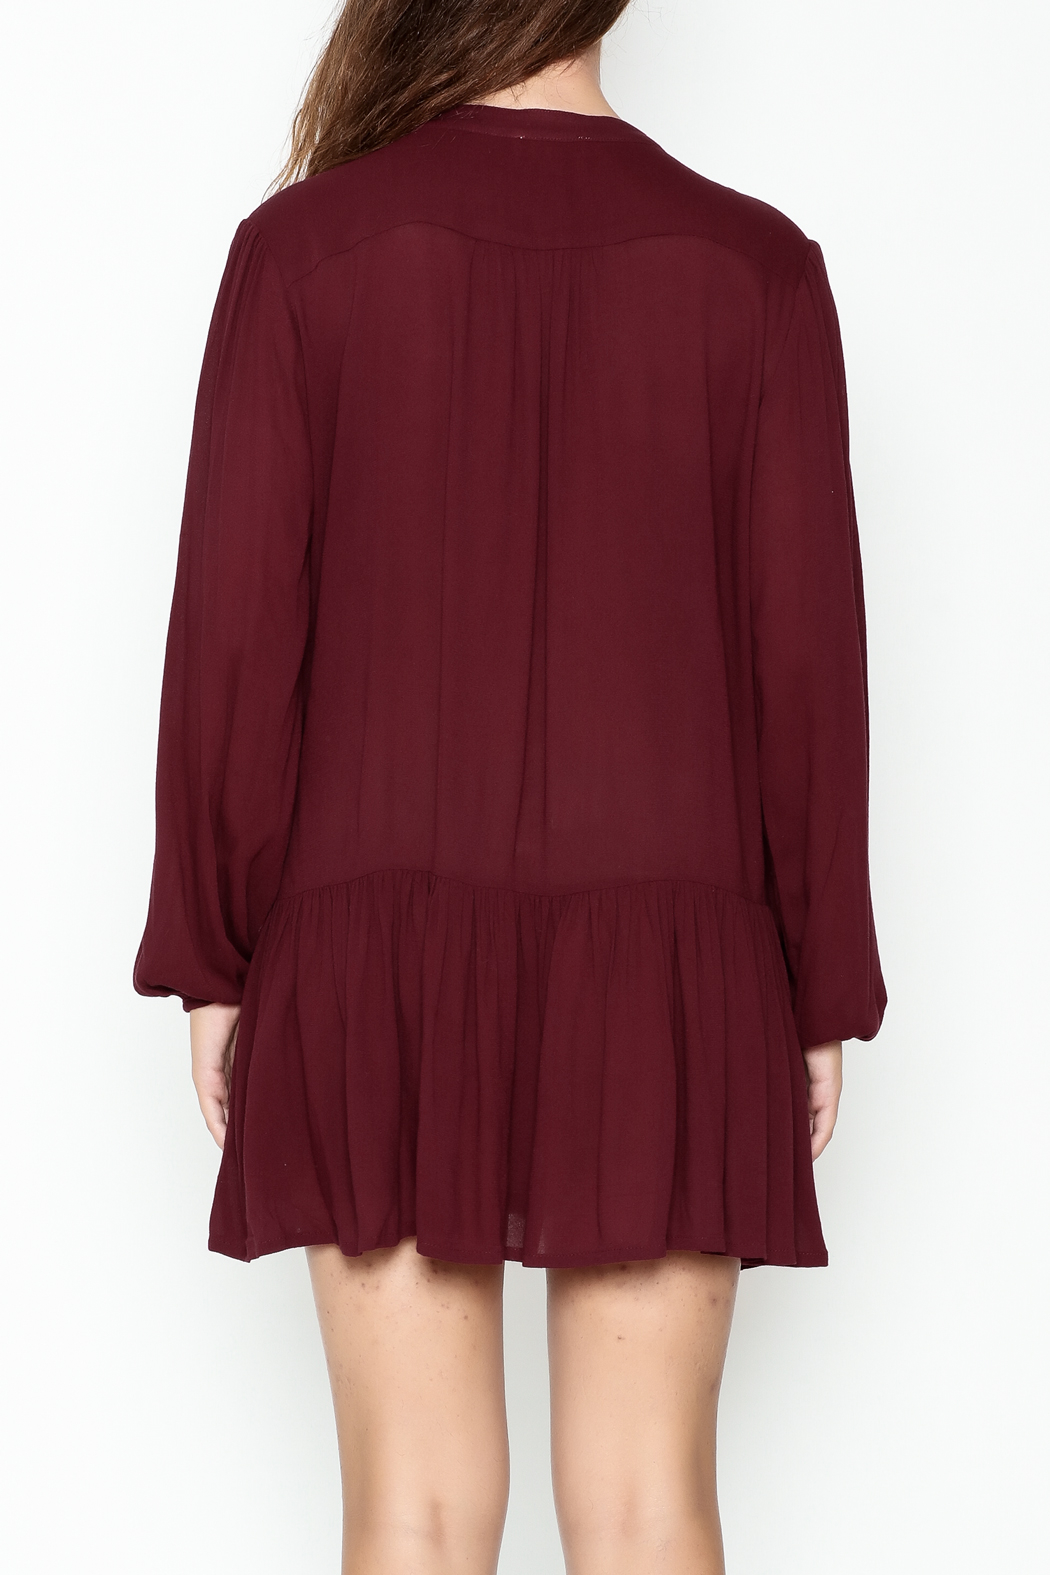 ee:some Button Down Tunic Dress - Back Cropped Image